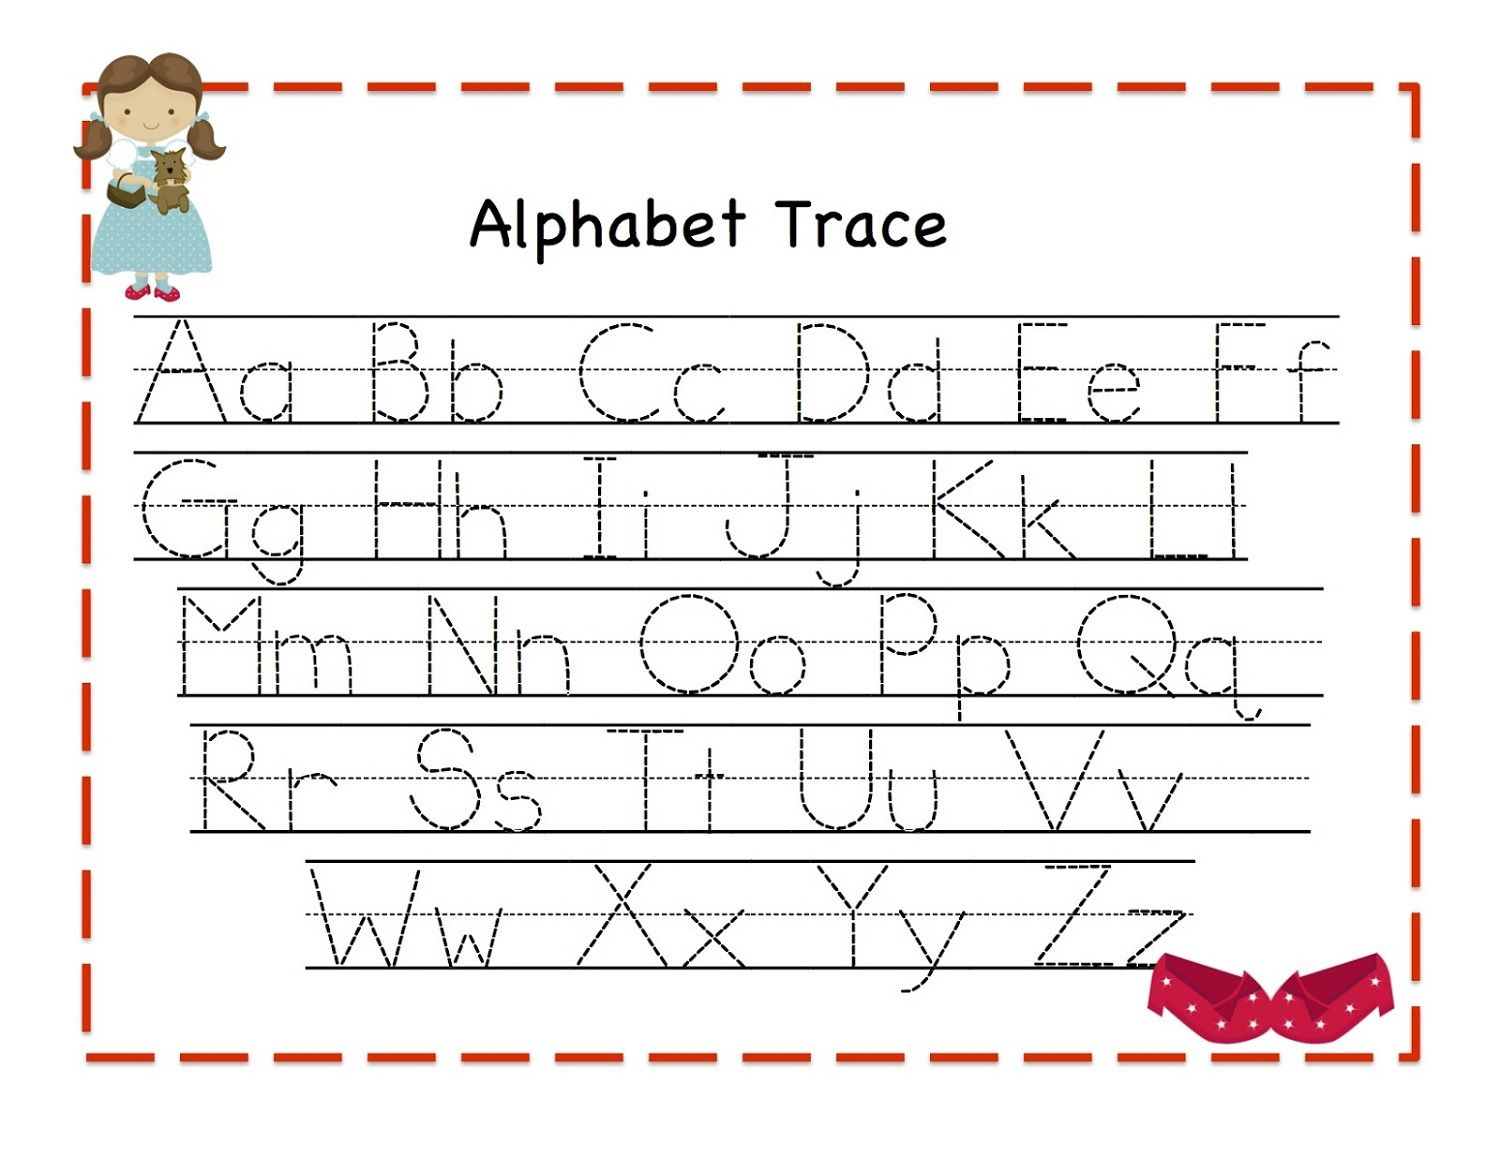 Workbooks traceable alphabet worksheets a-z : Traceable Alphabet For Learning Exercise | Dear Joya | Kids ...